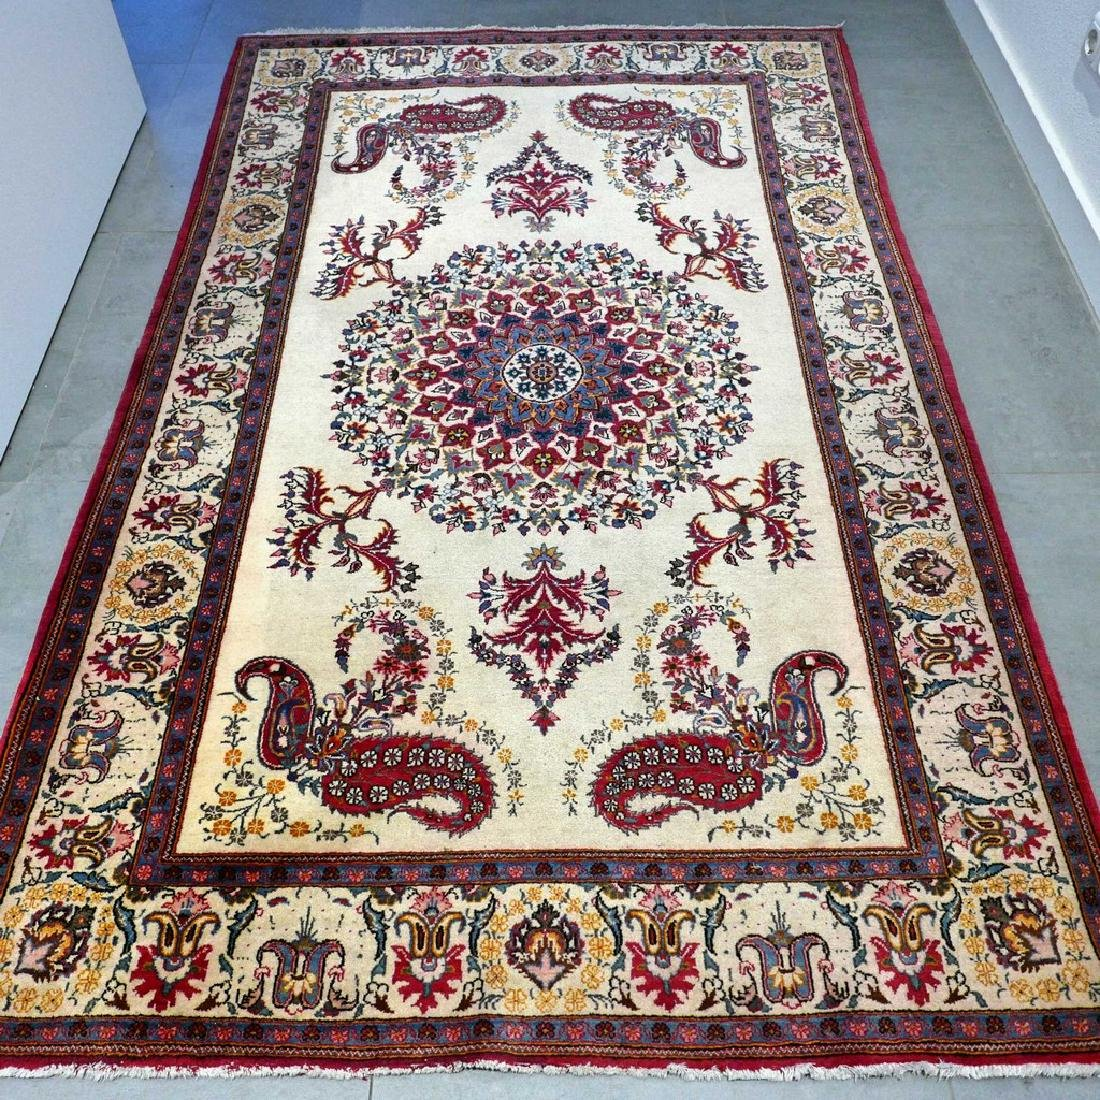 Keshan With Special Design Rug 7x4.4